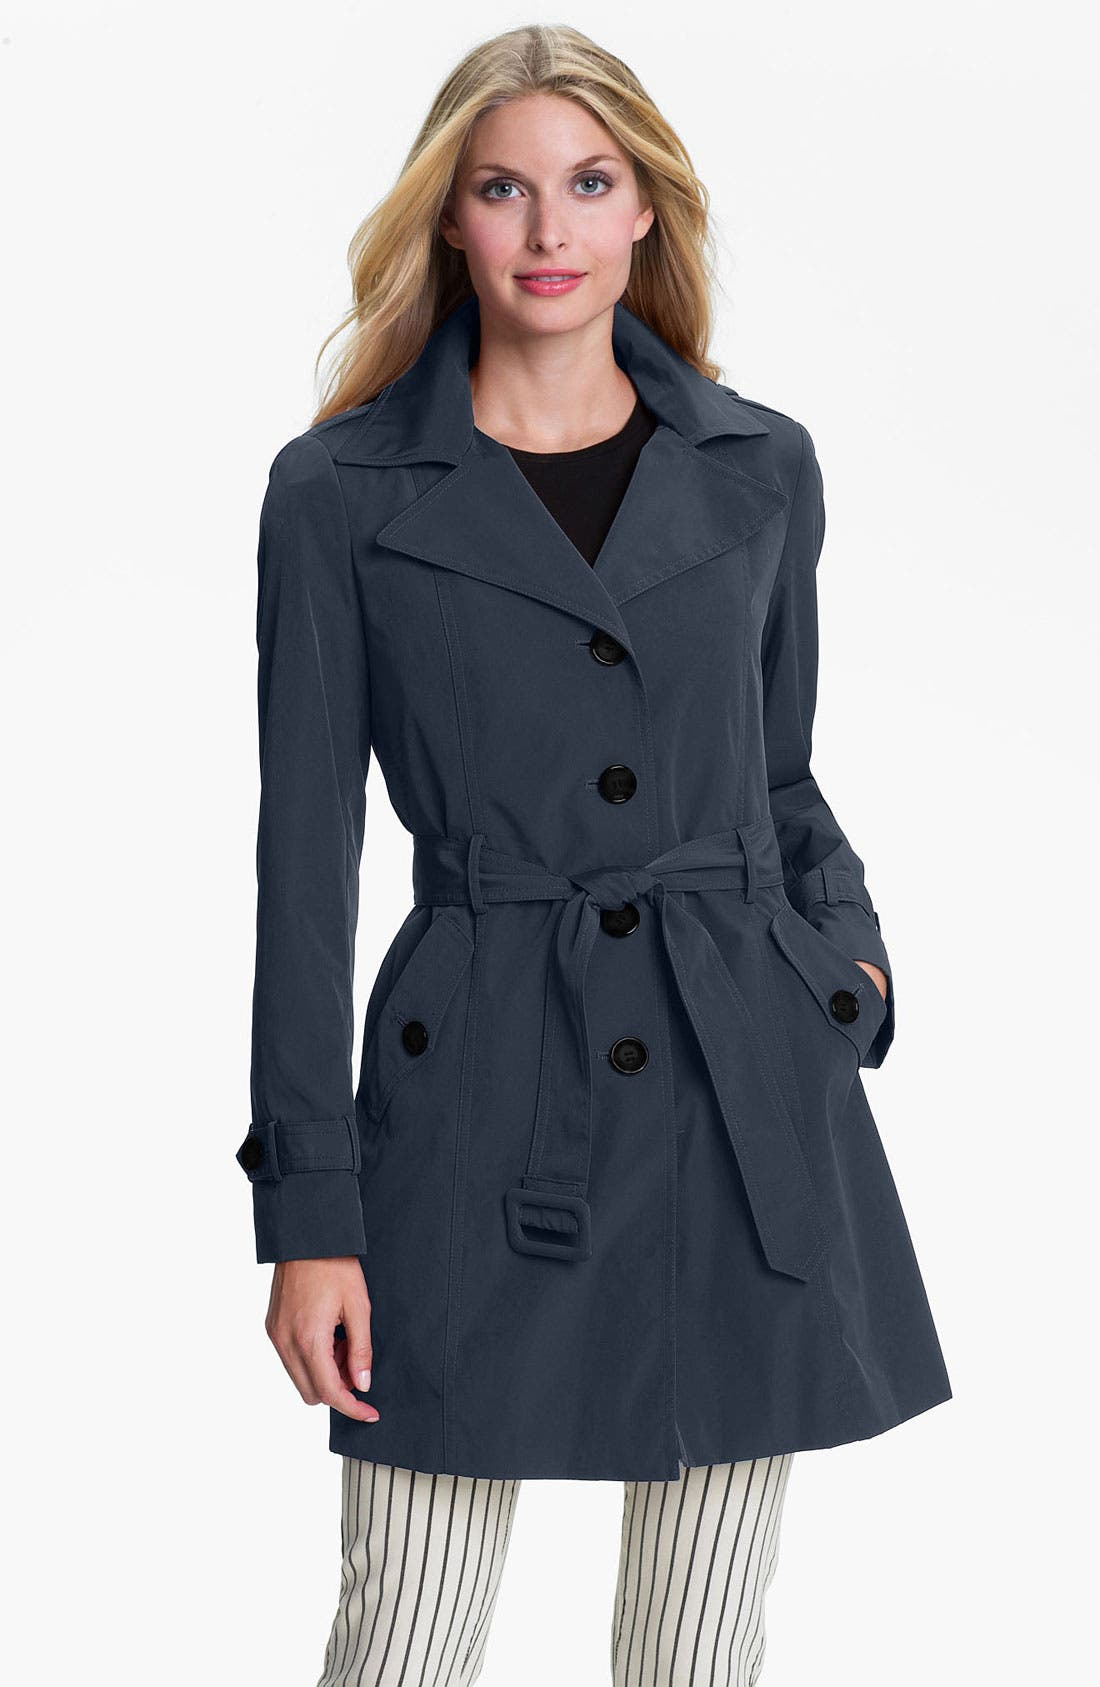 Alternate Image 1 Selected - Calvin Klein Trench Coat with Detachable Liner (Online Exclusive)